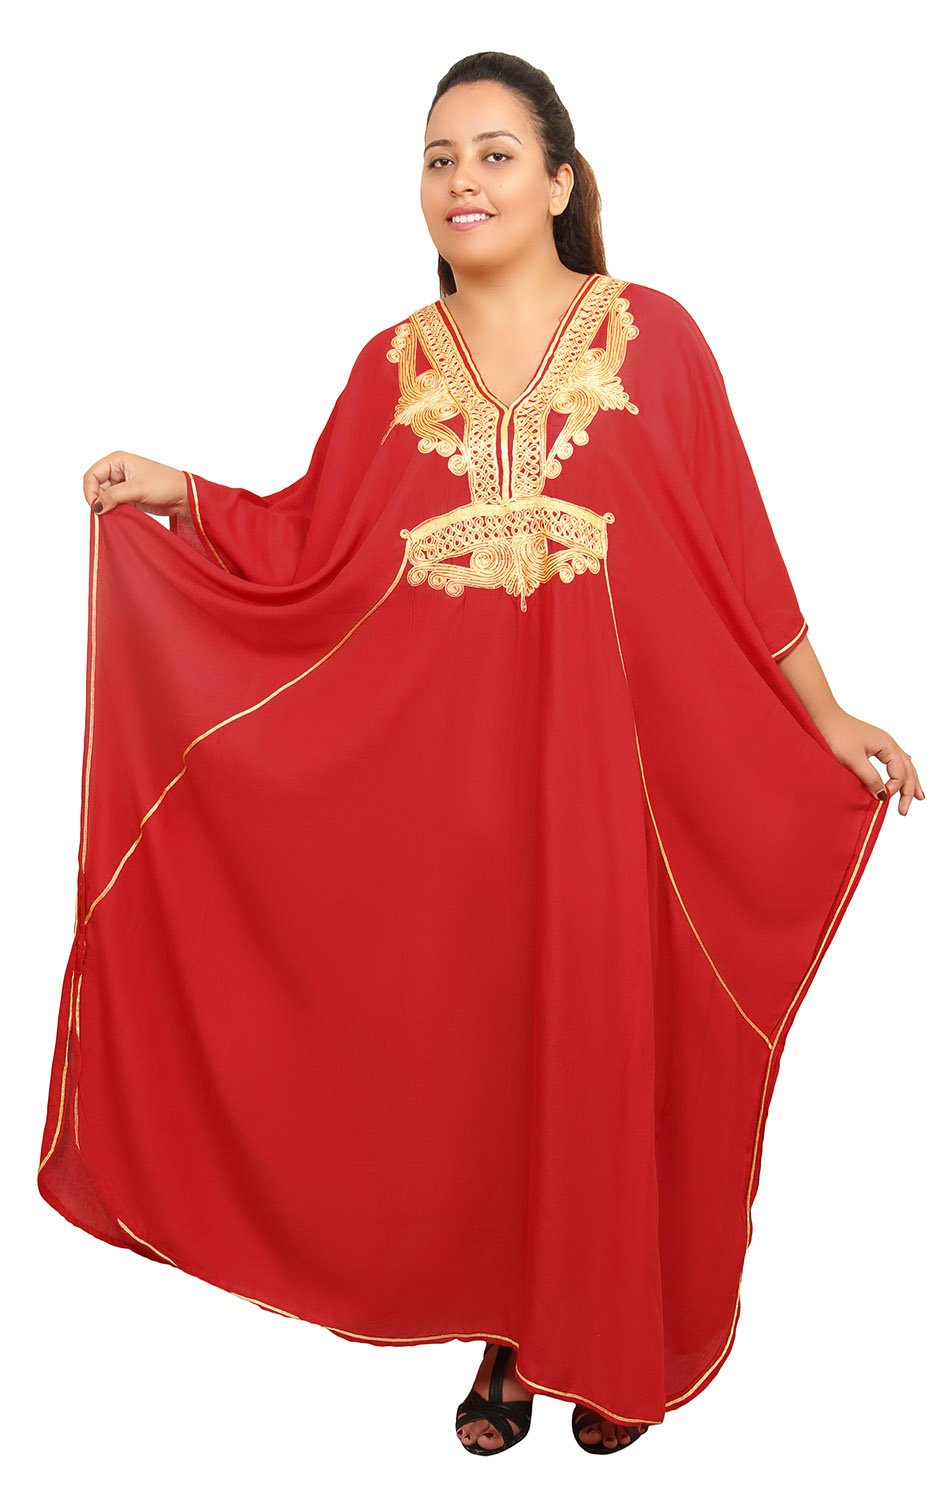 Moroccan Caftan Women Plus size Hand Made Caftan with Embroidery XXL up-to 4XL